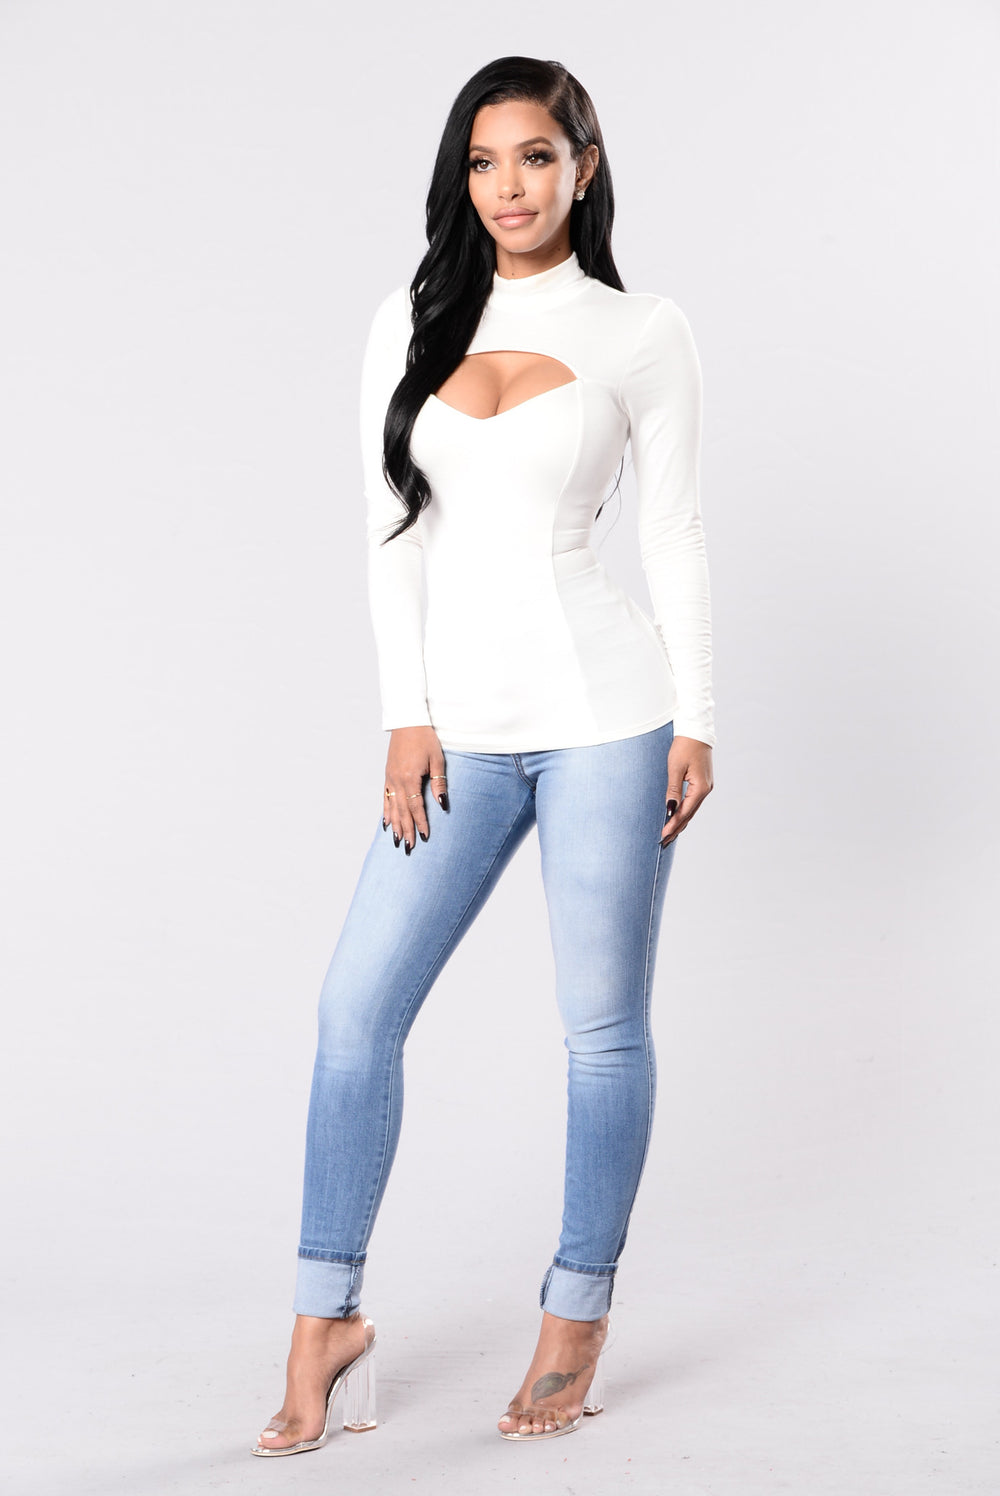 The Night Watch Top - Ivory